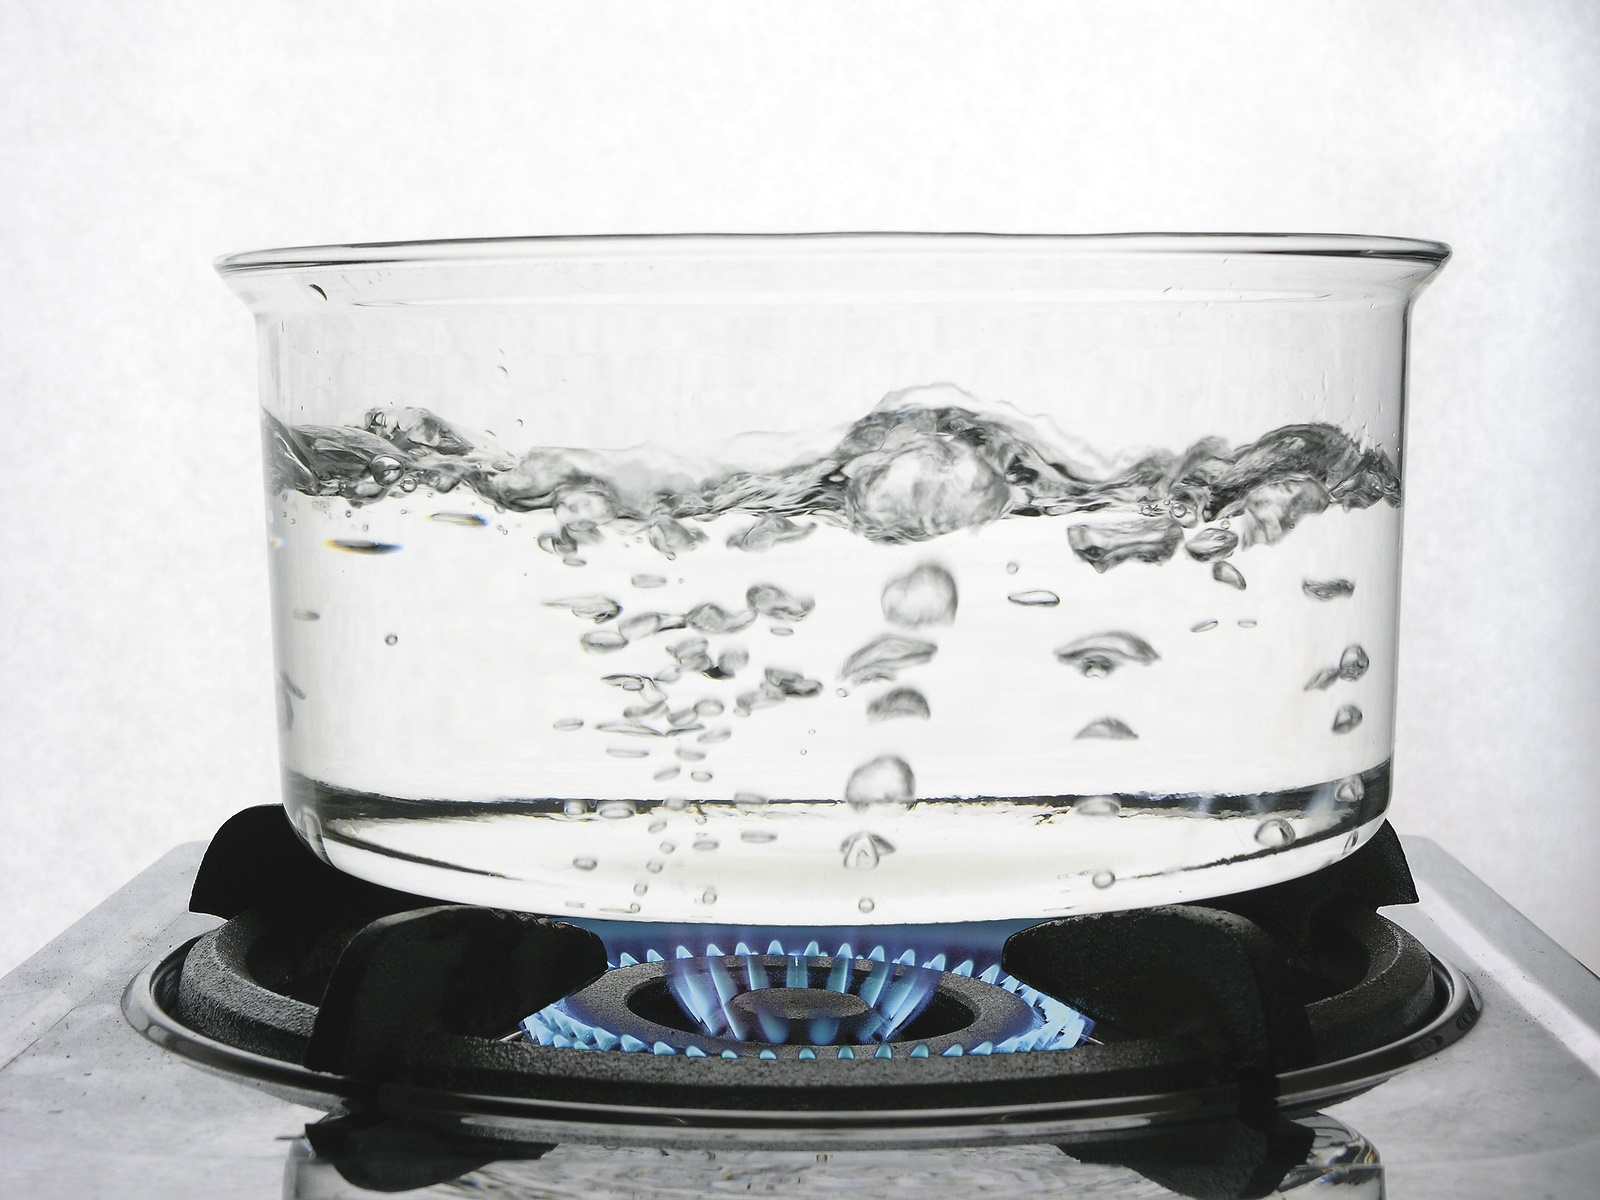 Act quickly and calmly when suffering a boiling water burn